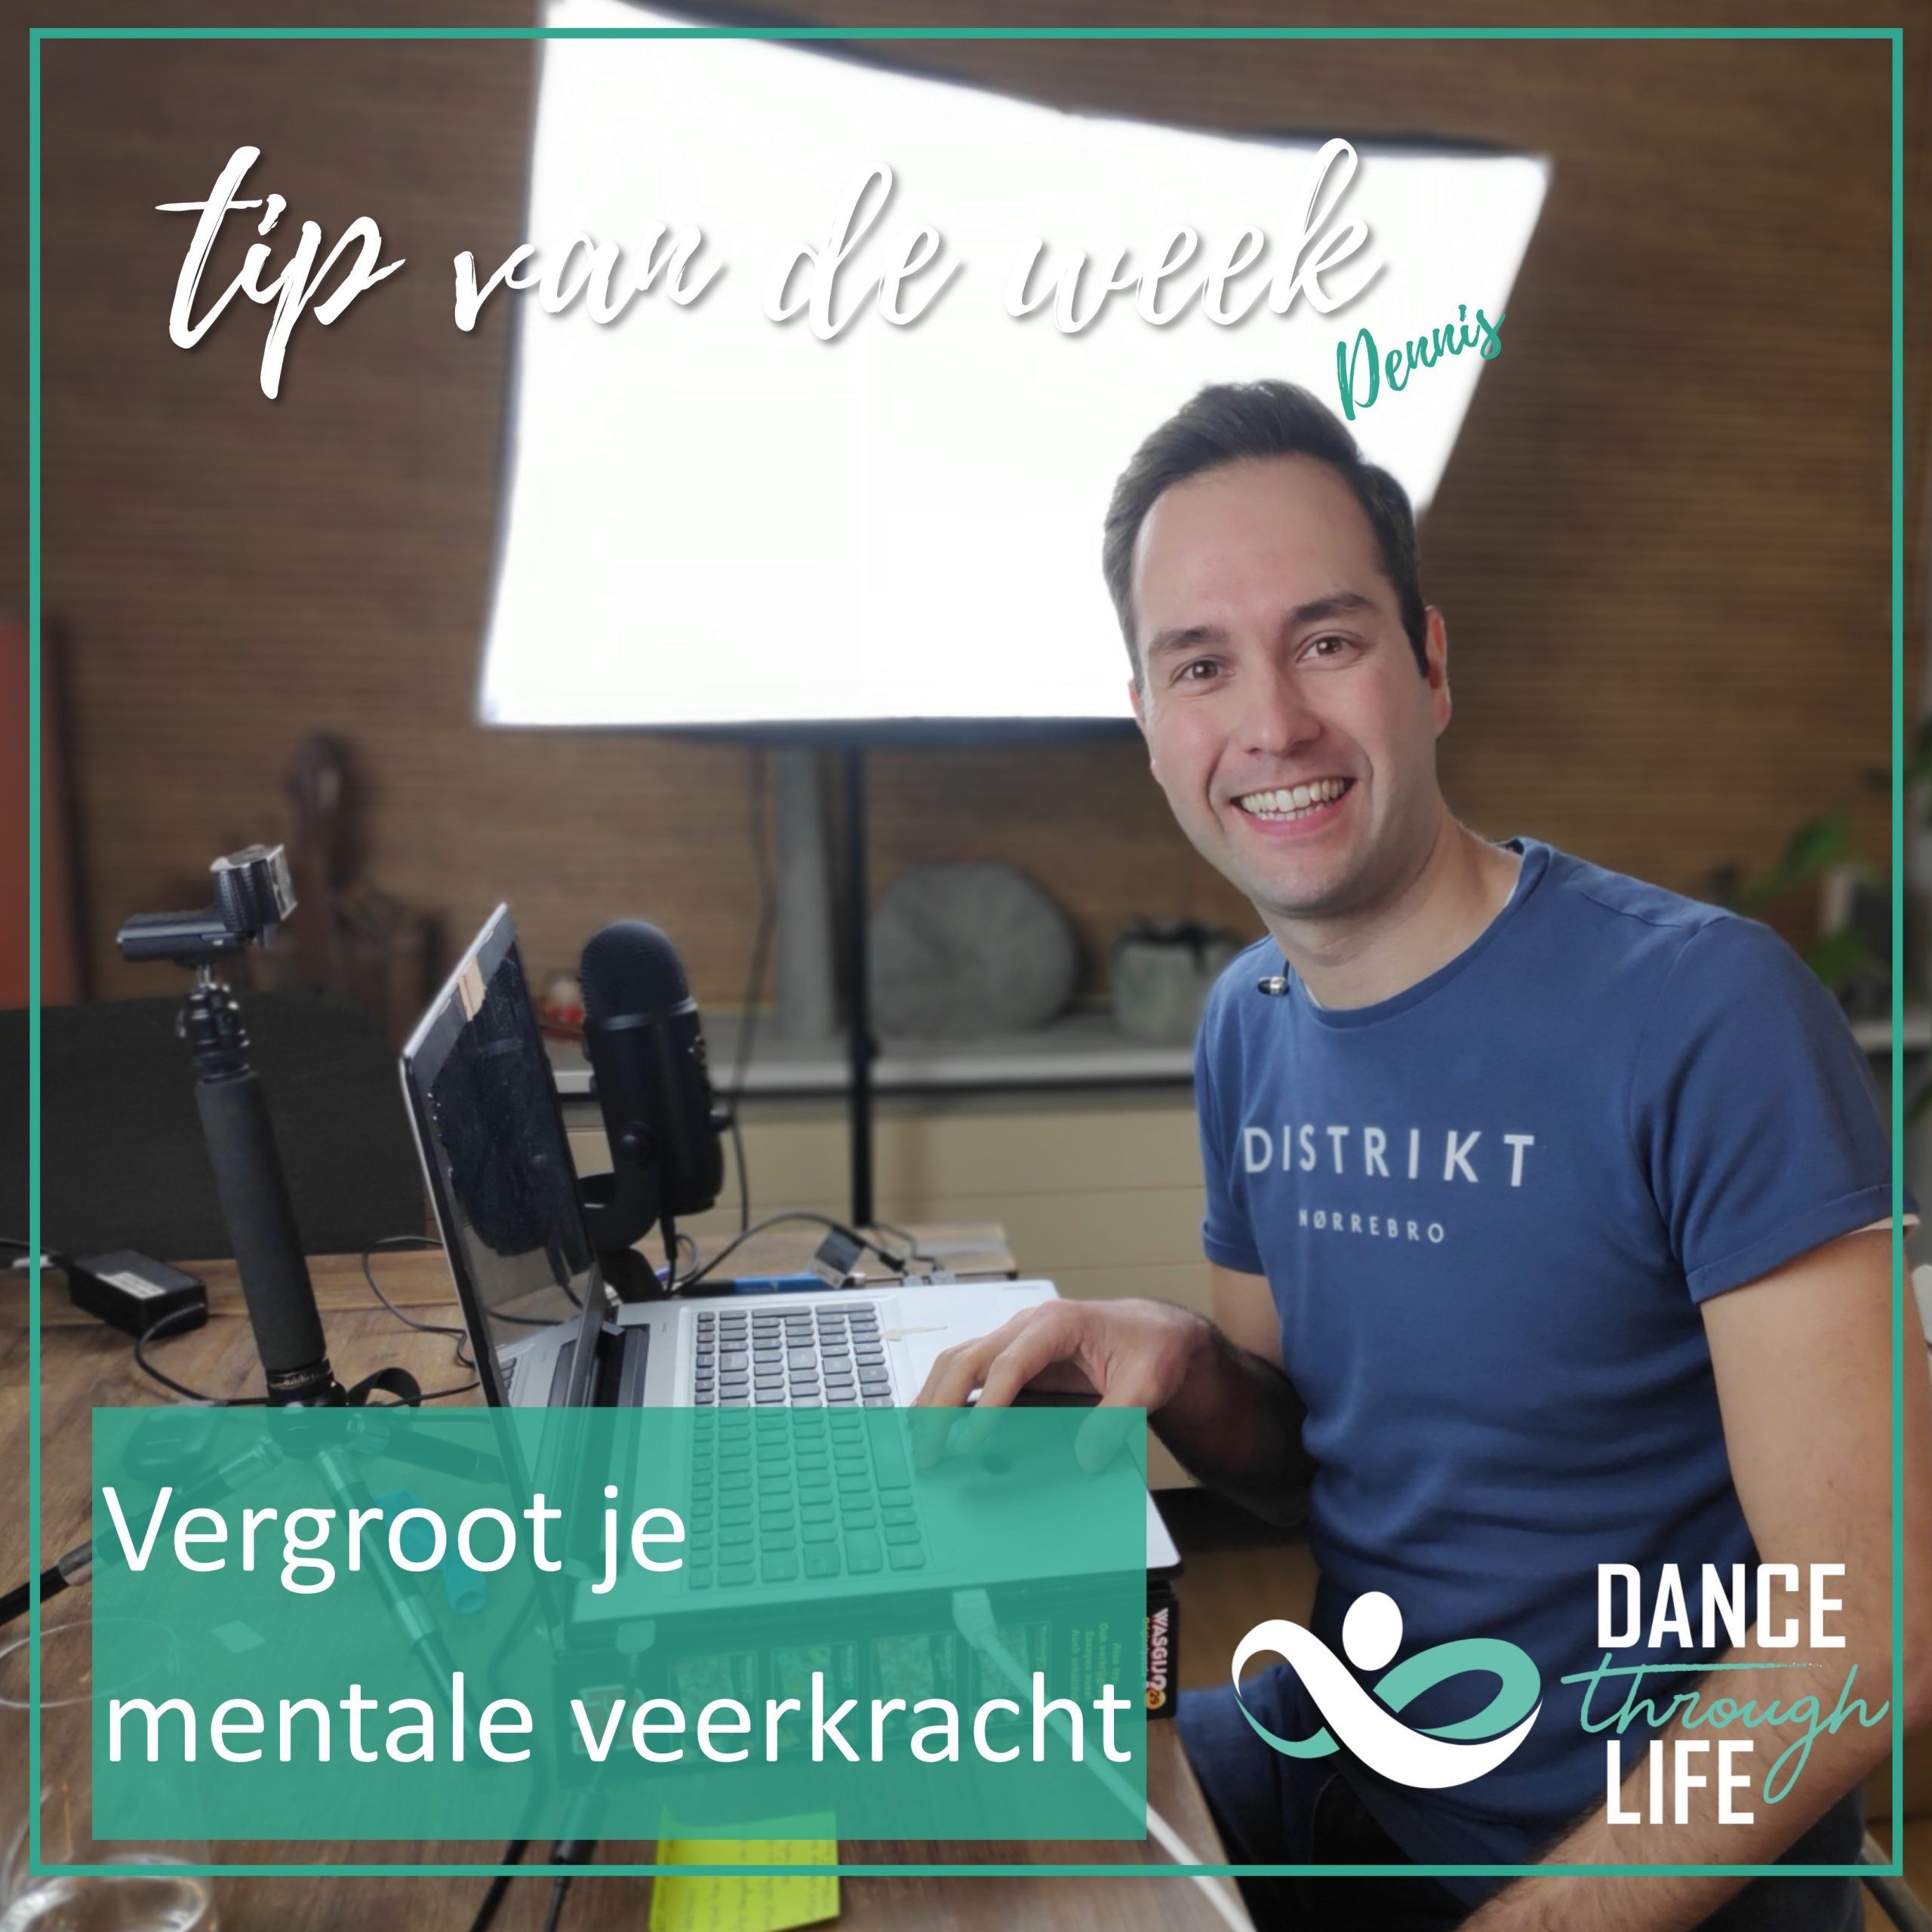 Veerkracht - Dennis - Dance Through Life